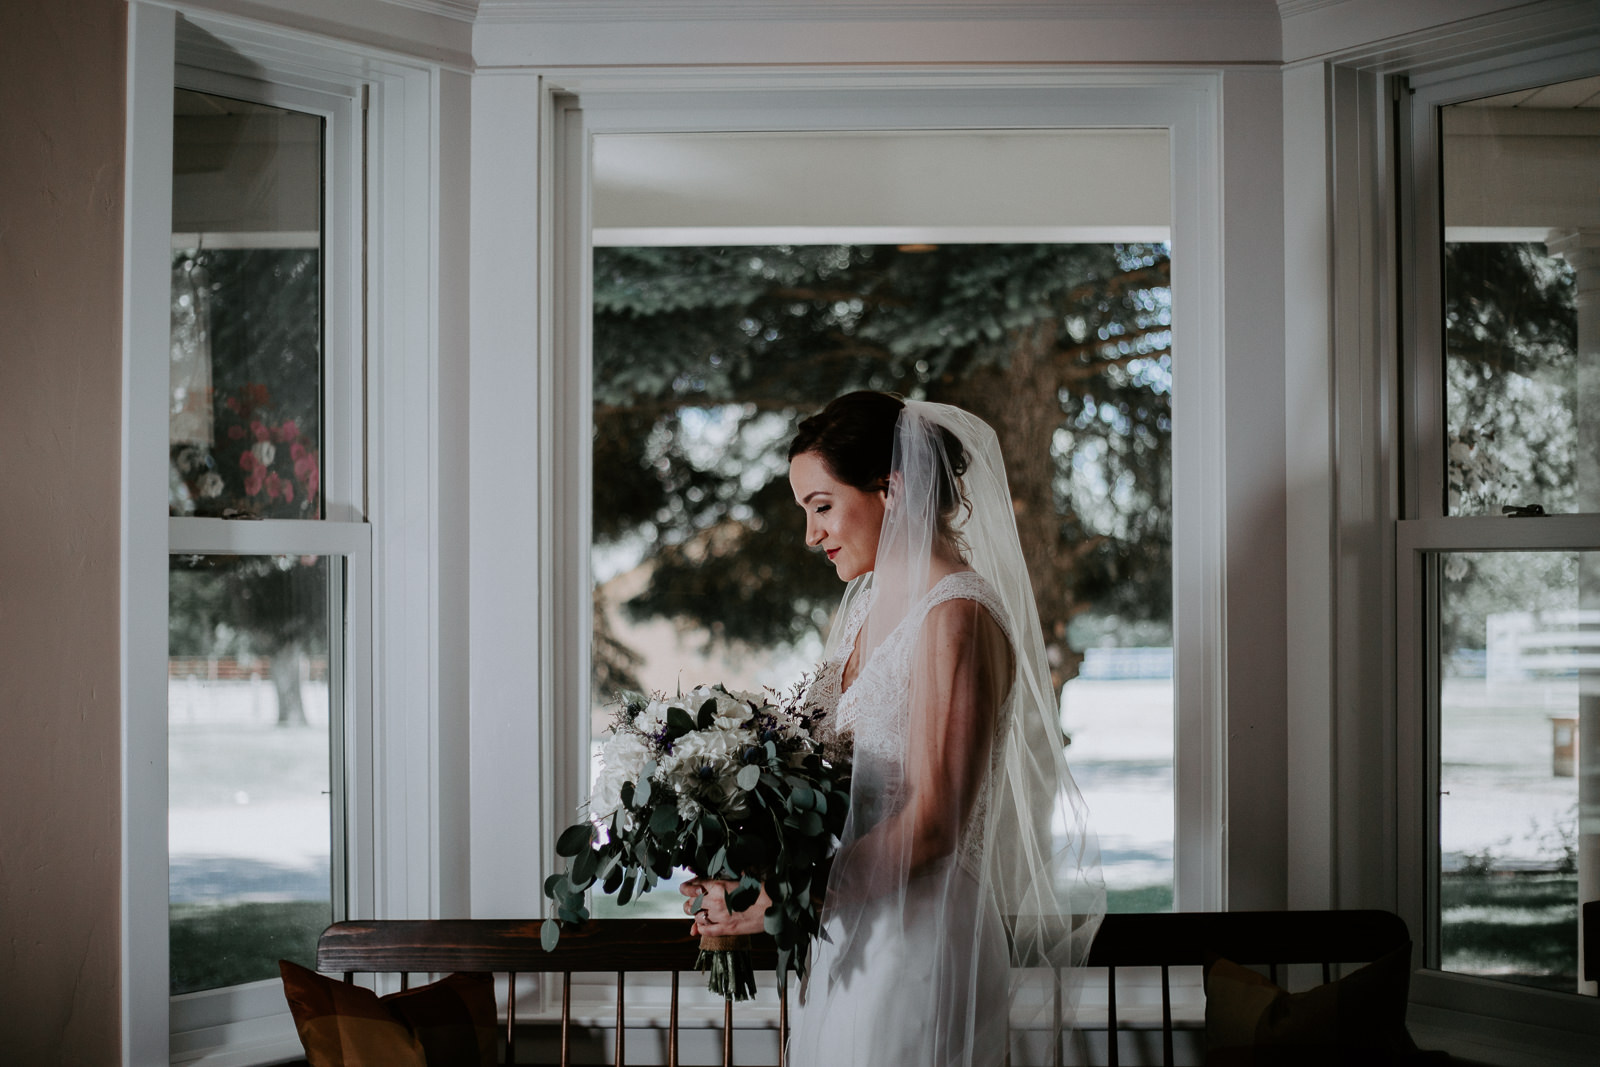 Bride with veil holding floral bouquet in front of windows in old farm house